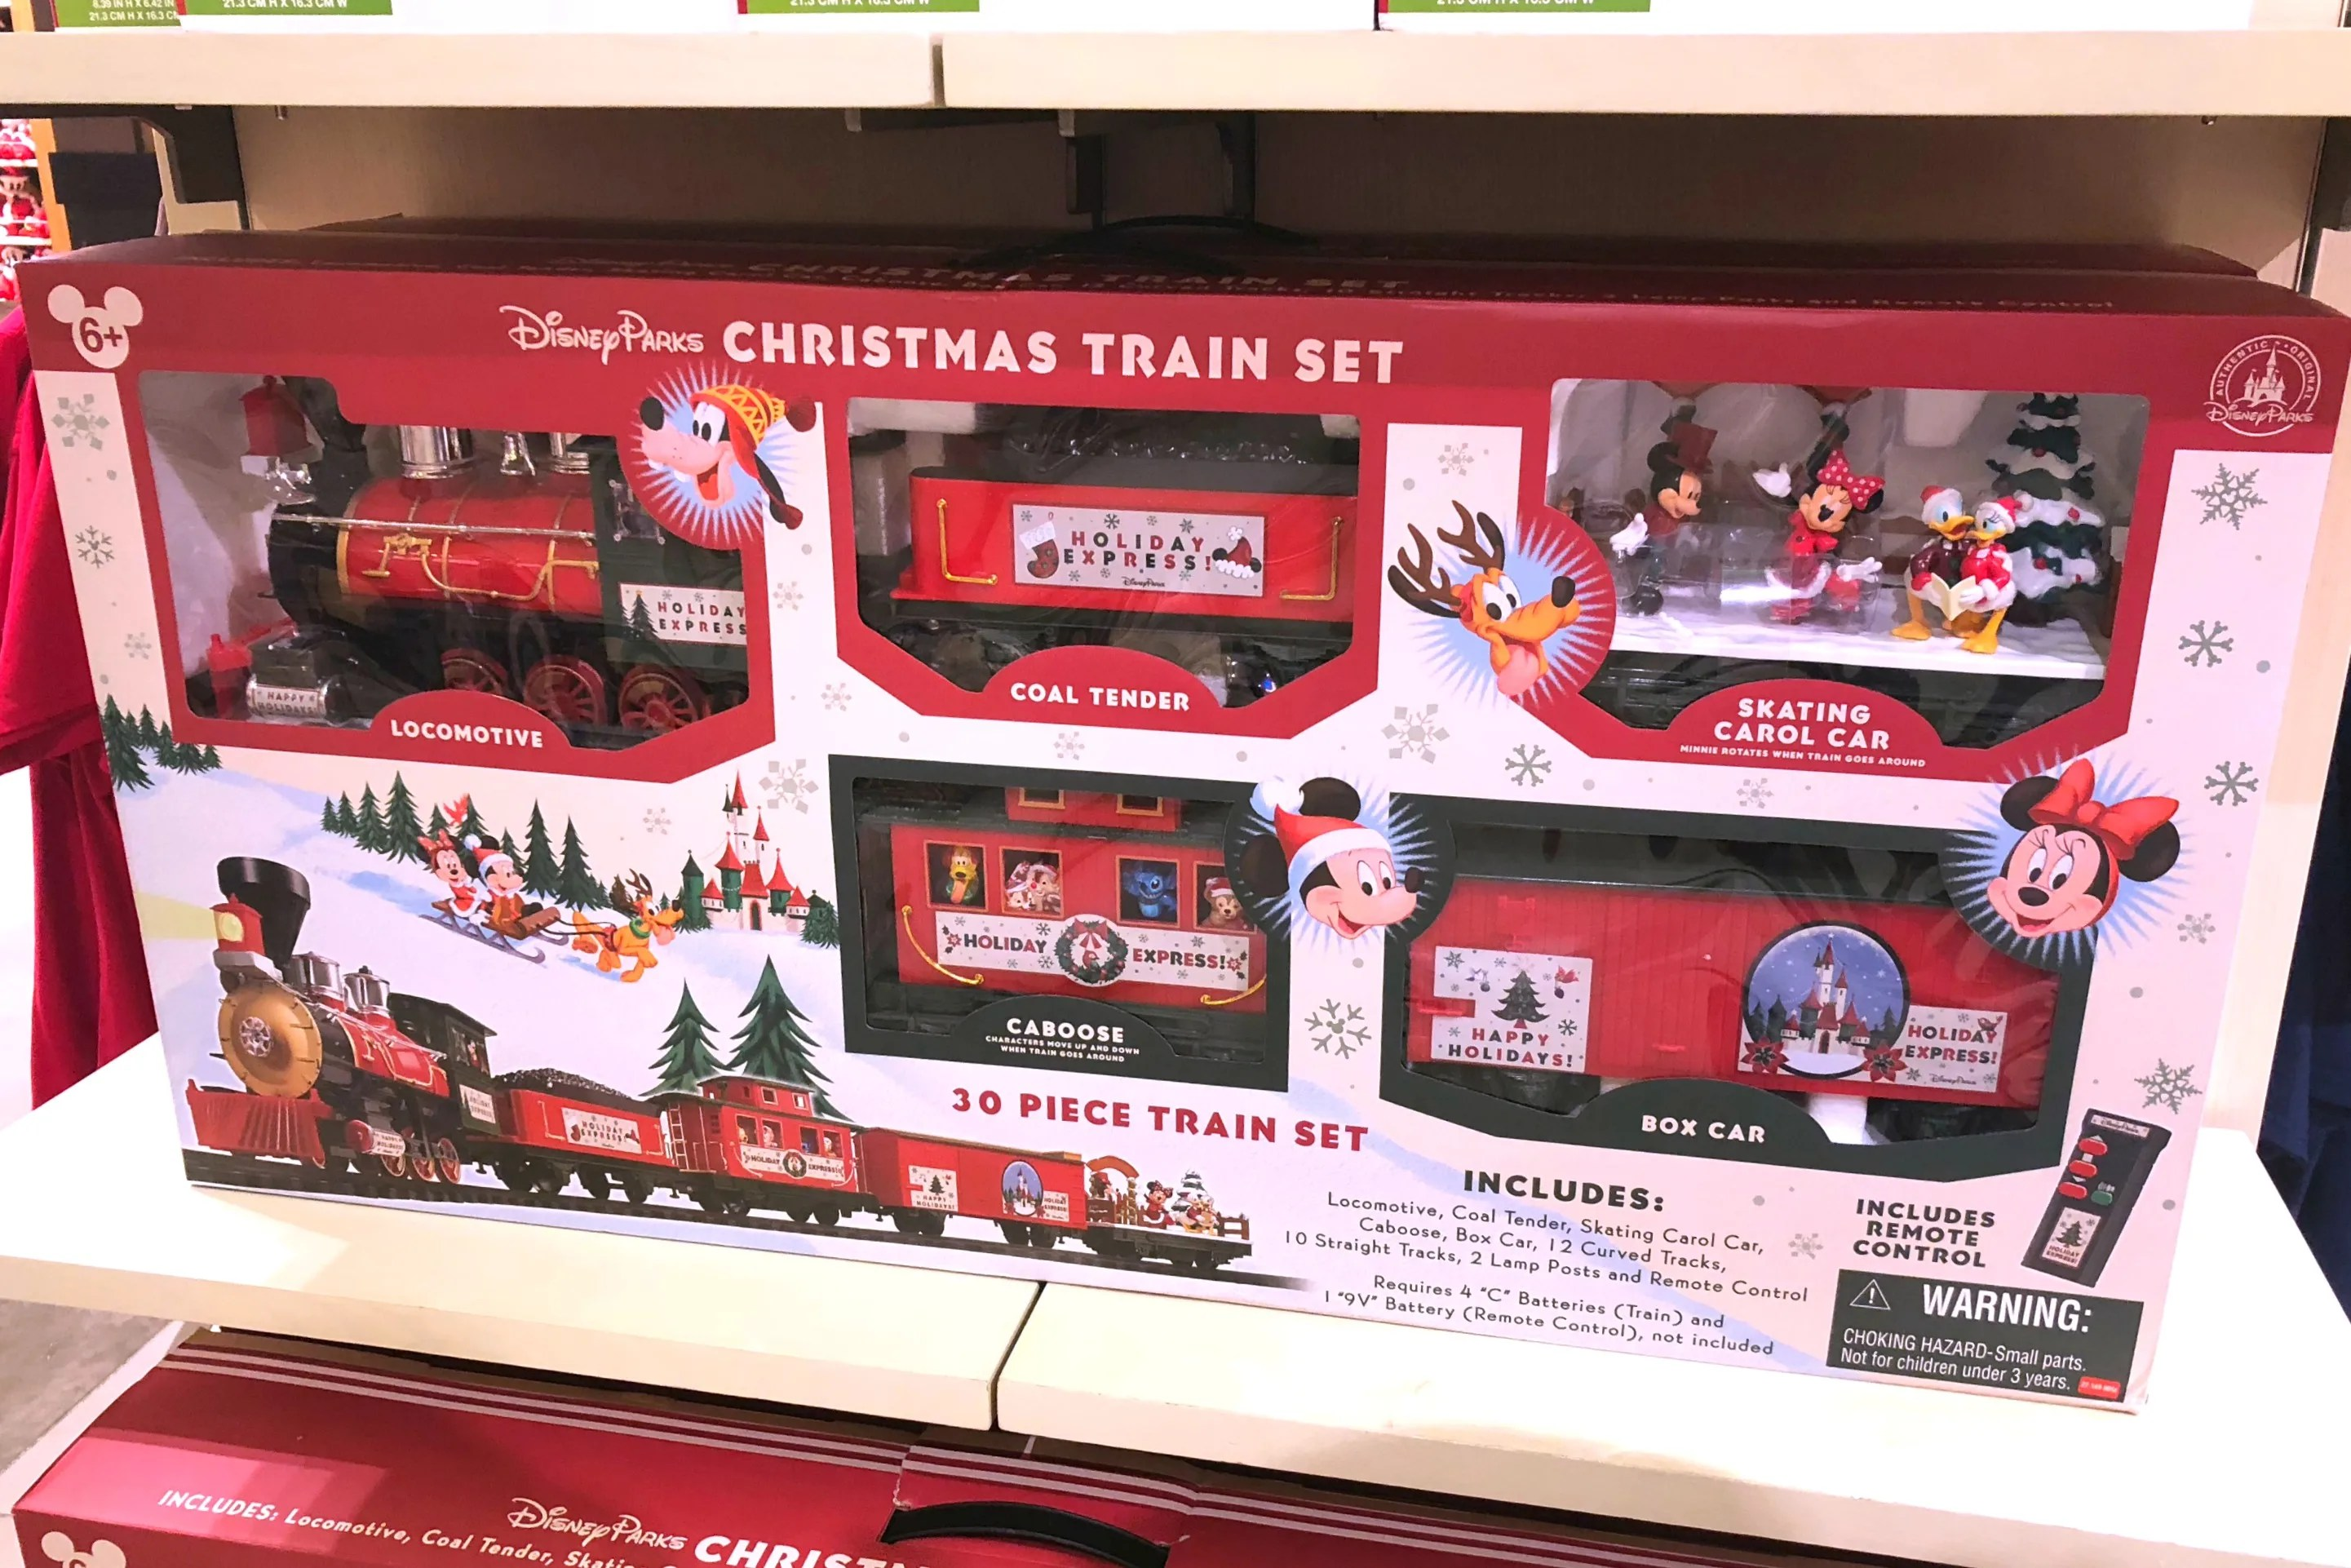 Disneyland Holidays - Merchandise - Holiday Train